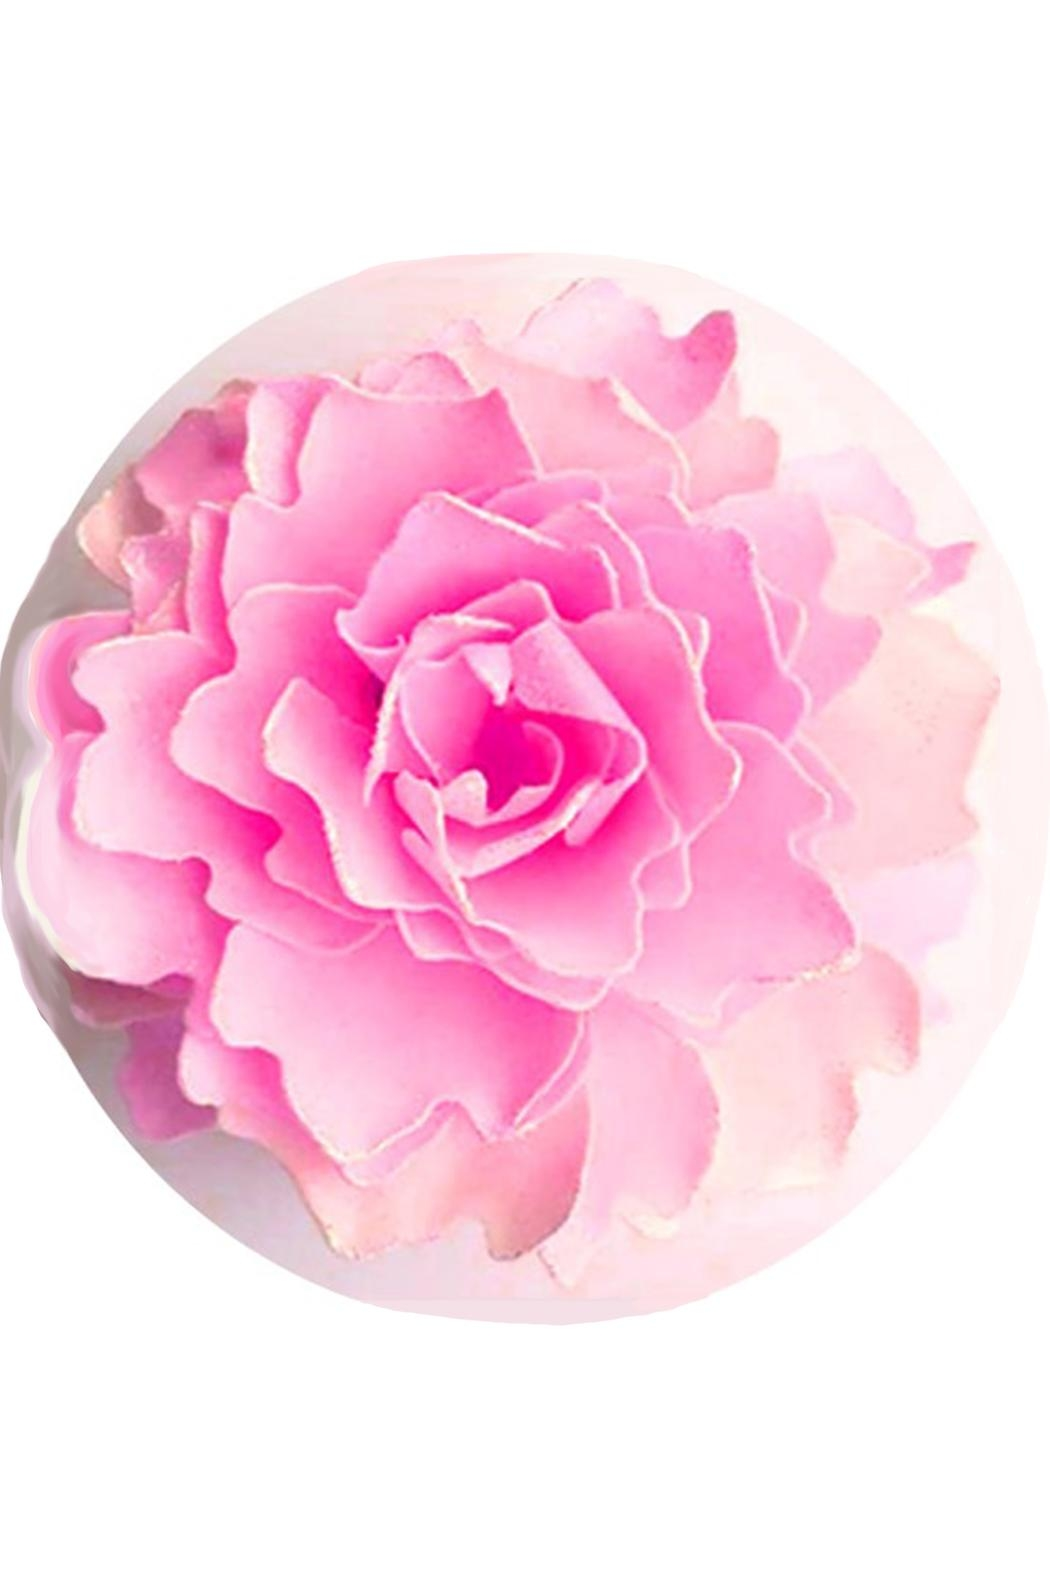 A'Marie's Bath Flower Shop Flower-Soap Pink Patty - Main Image